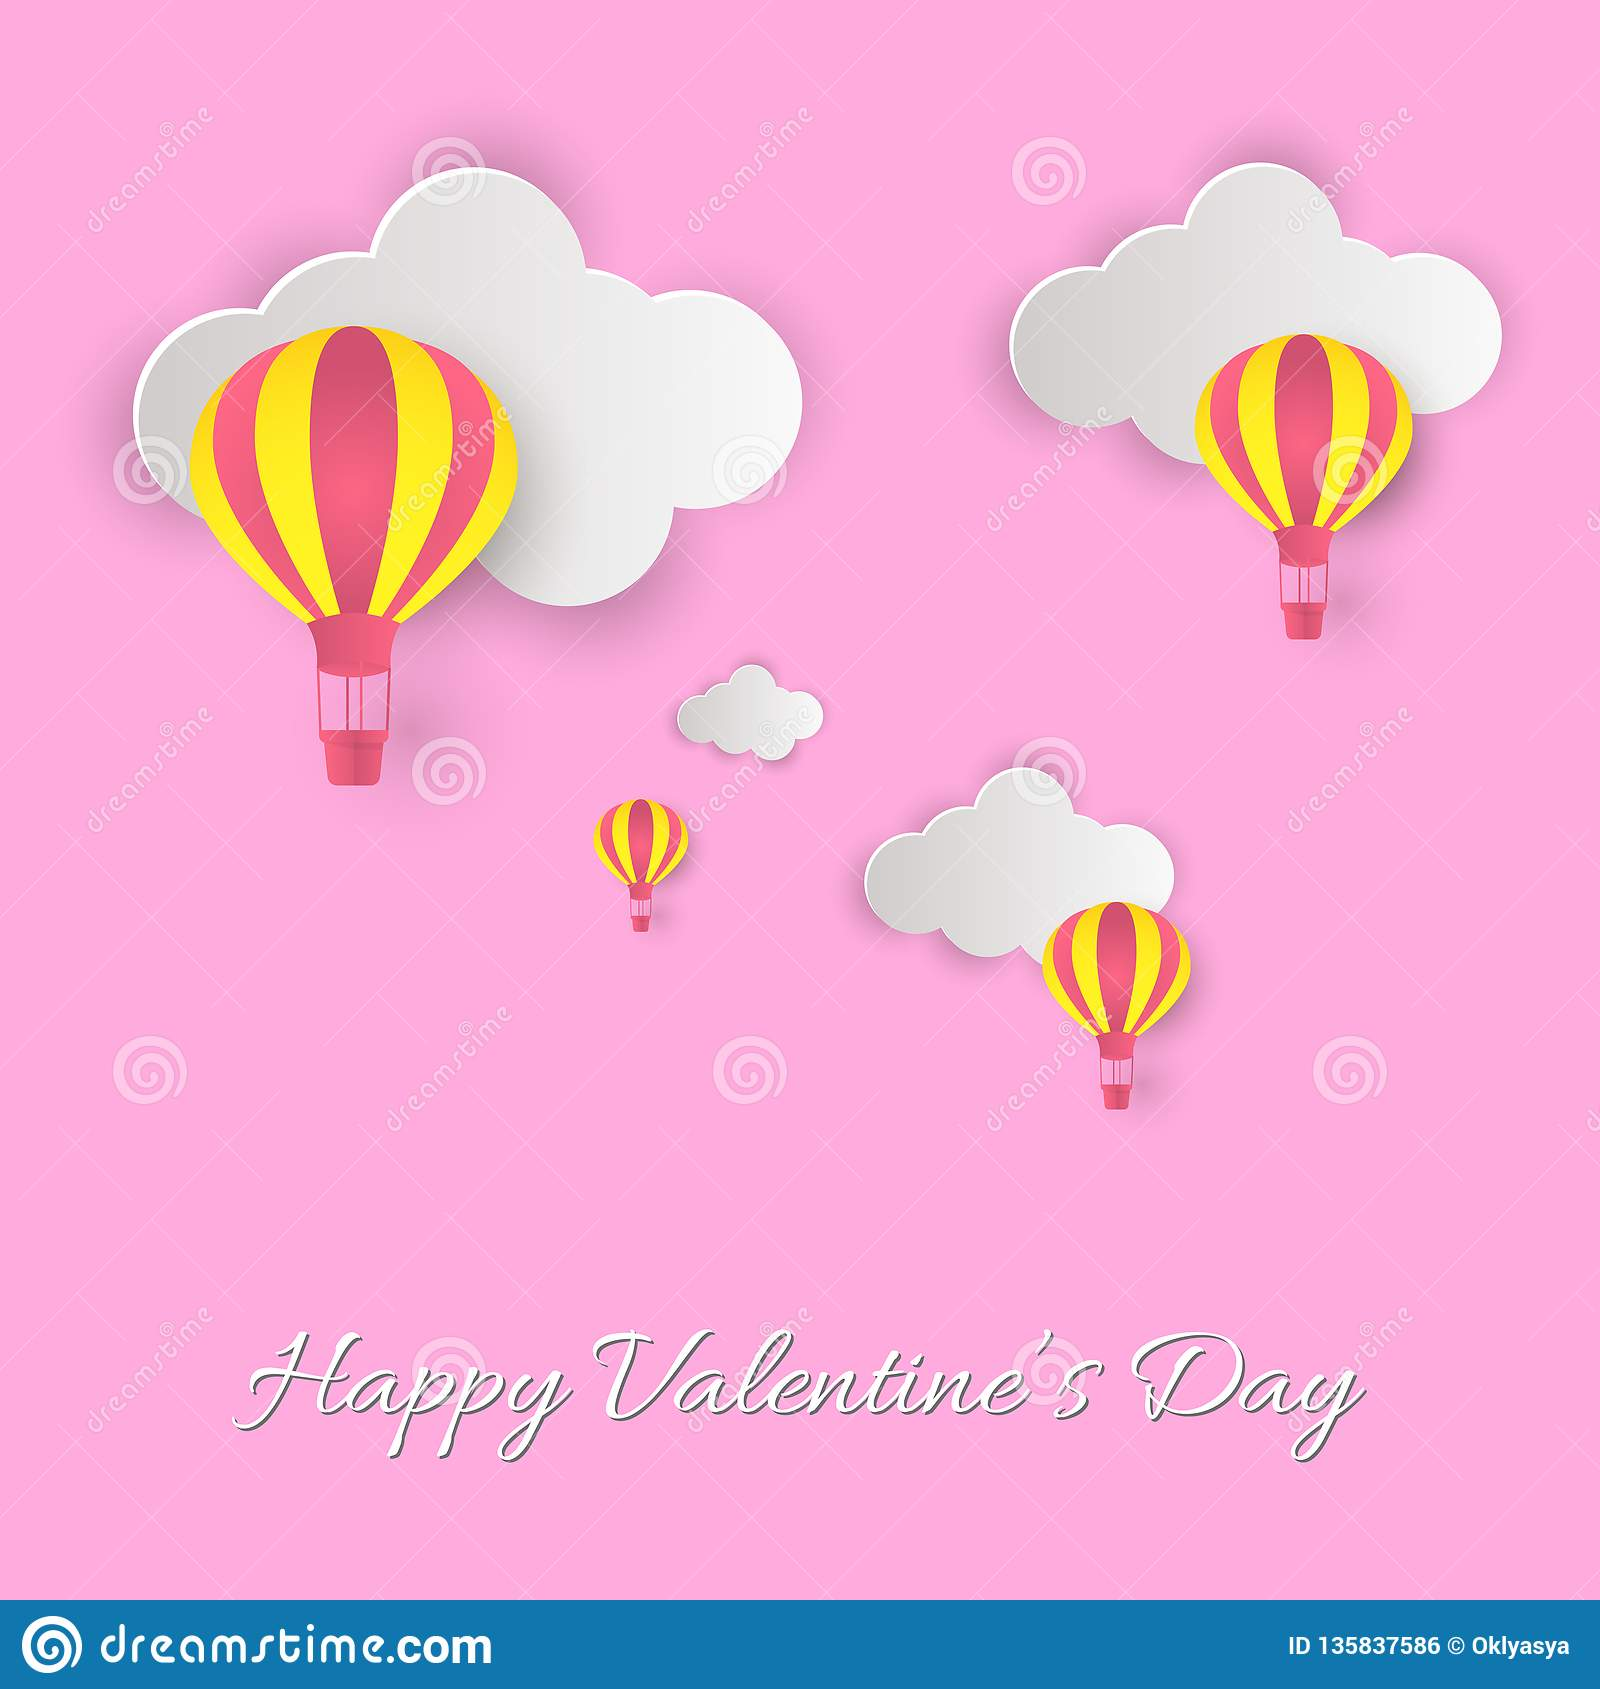 Happy Valentine`s Day! Beautiful clouds and air balloons! Abstract paper art 3D vector illustration on pink background.